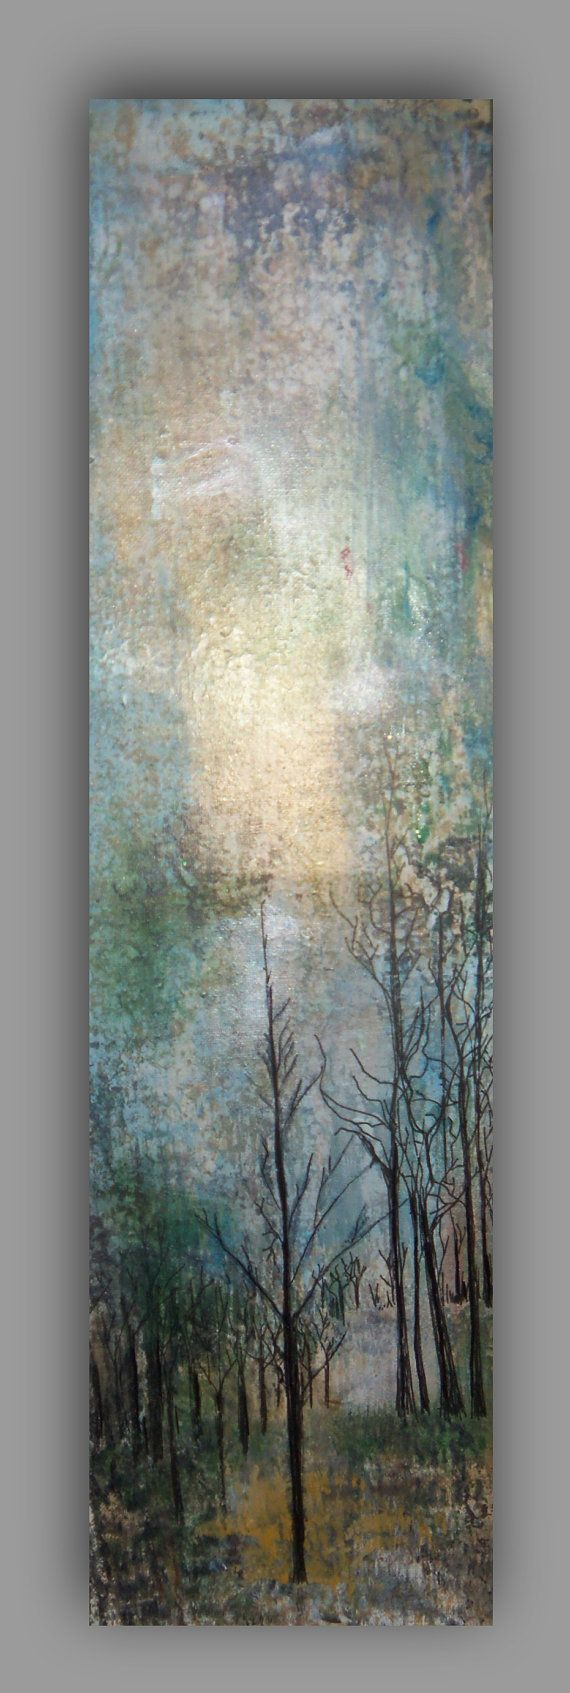 Original Treescape Two Mixed Media My Presence Walk by sherischart, $112.00 http://www.etsy.com/shop/sherischart   fine art paintings  Paintings to SEA.